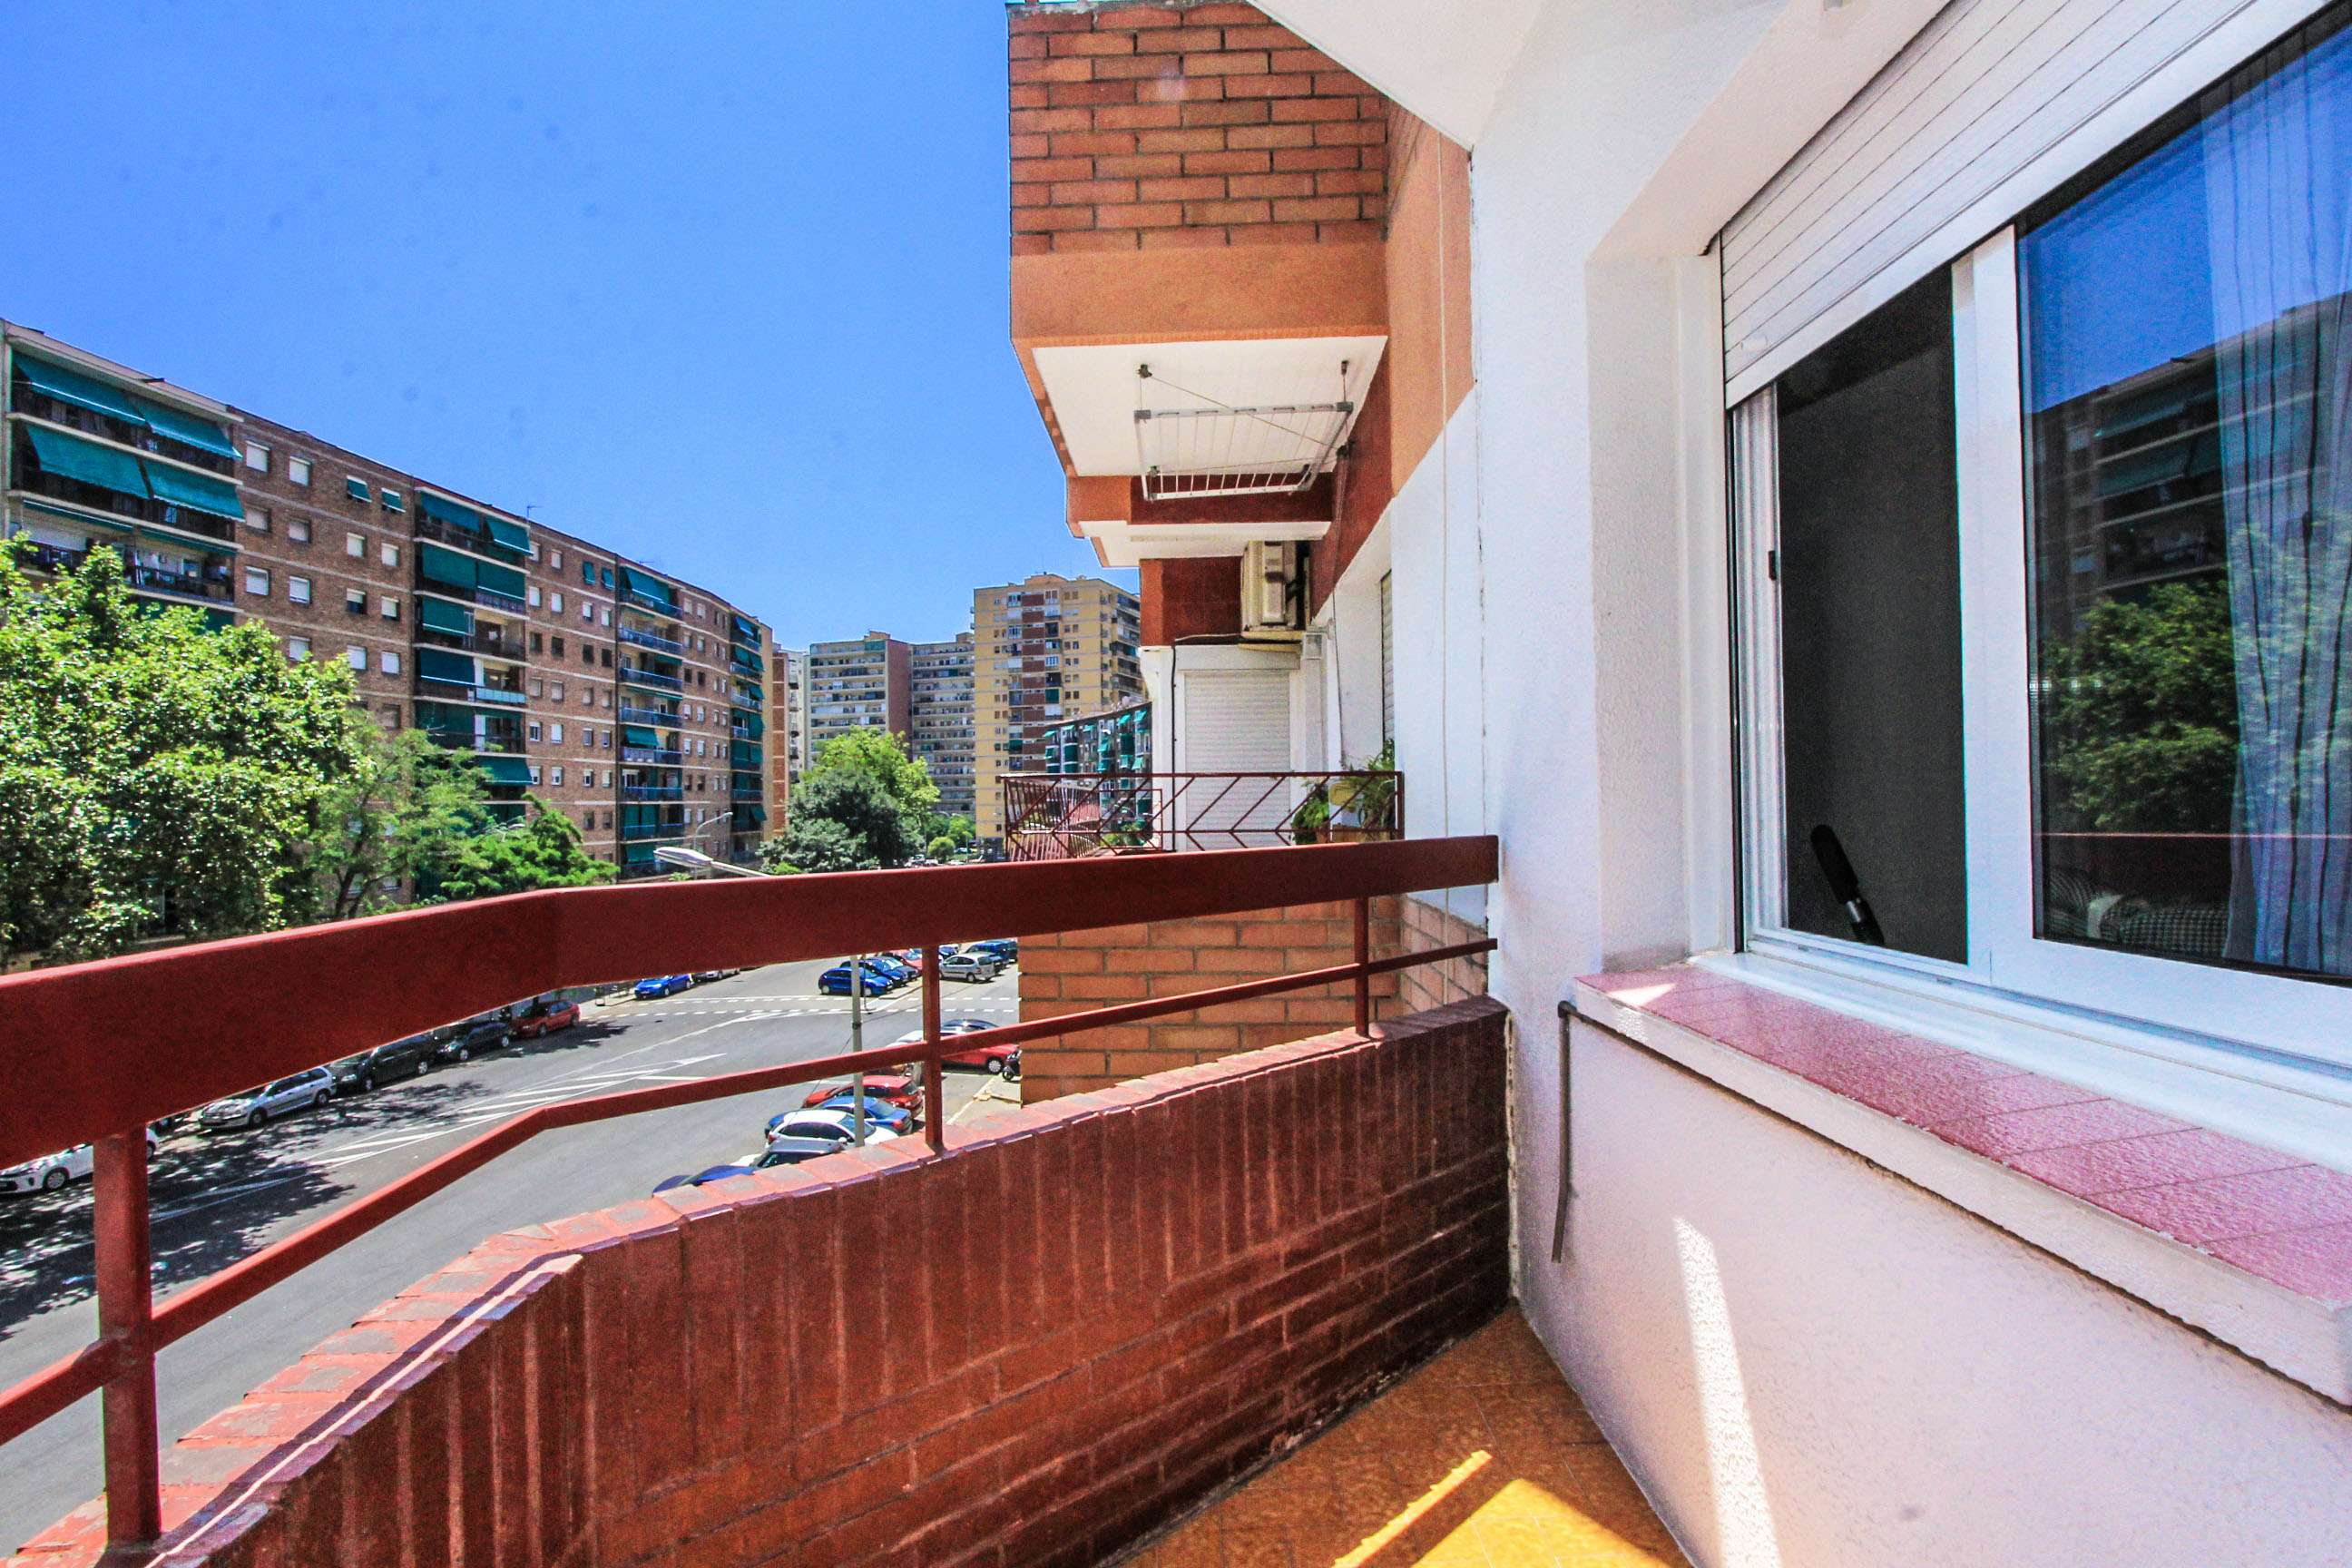 Flat with 3 bedrooms and balcony